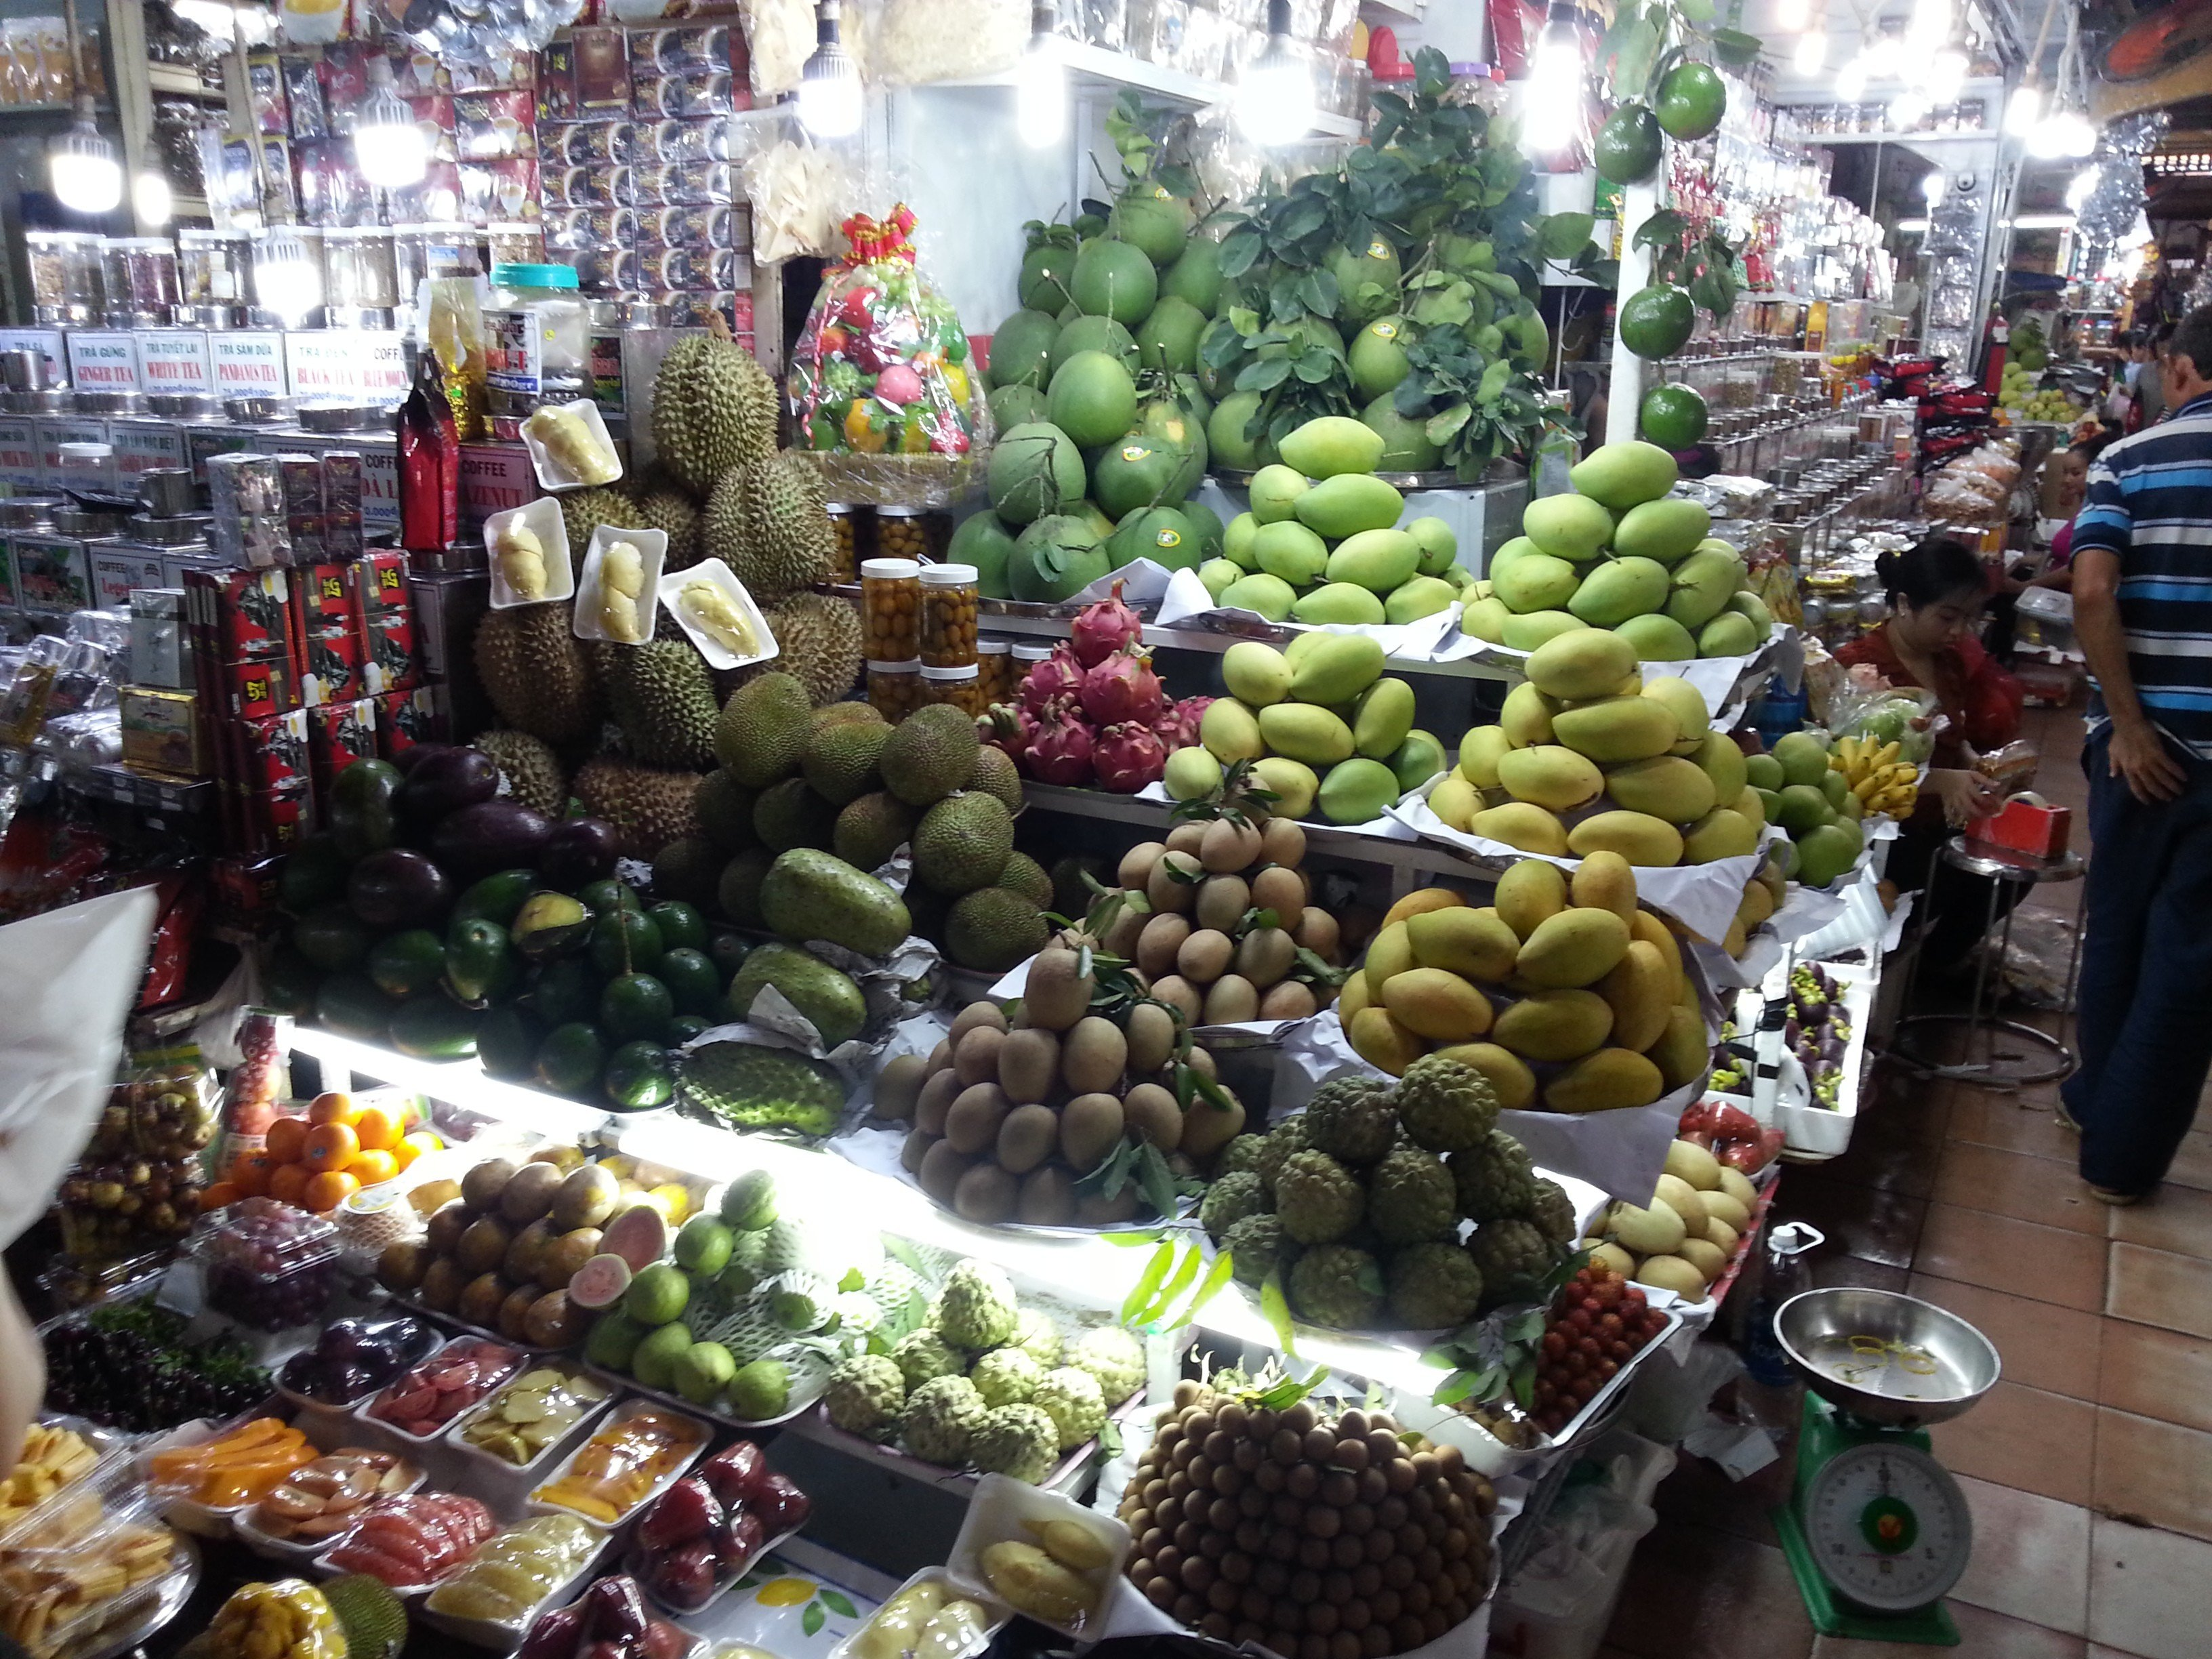 Fruit stall at Ben Thanh Market